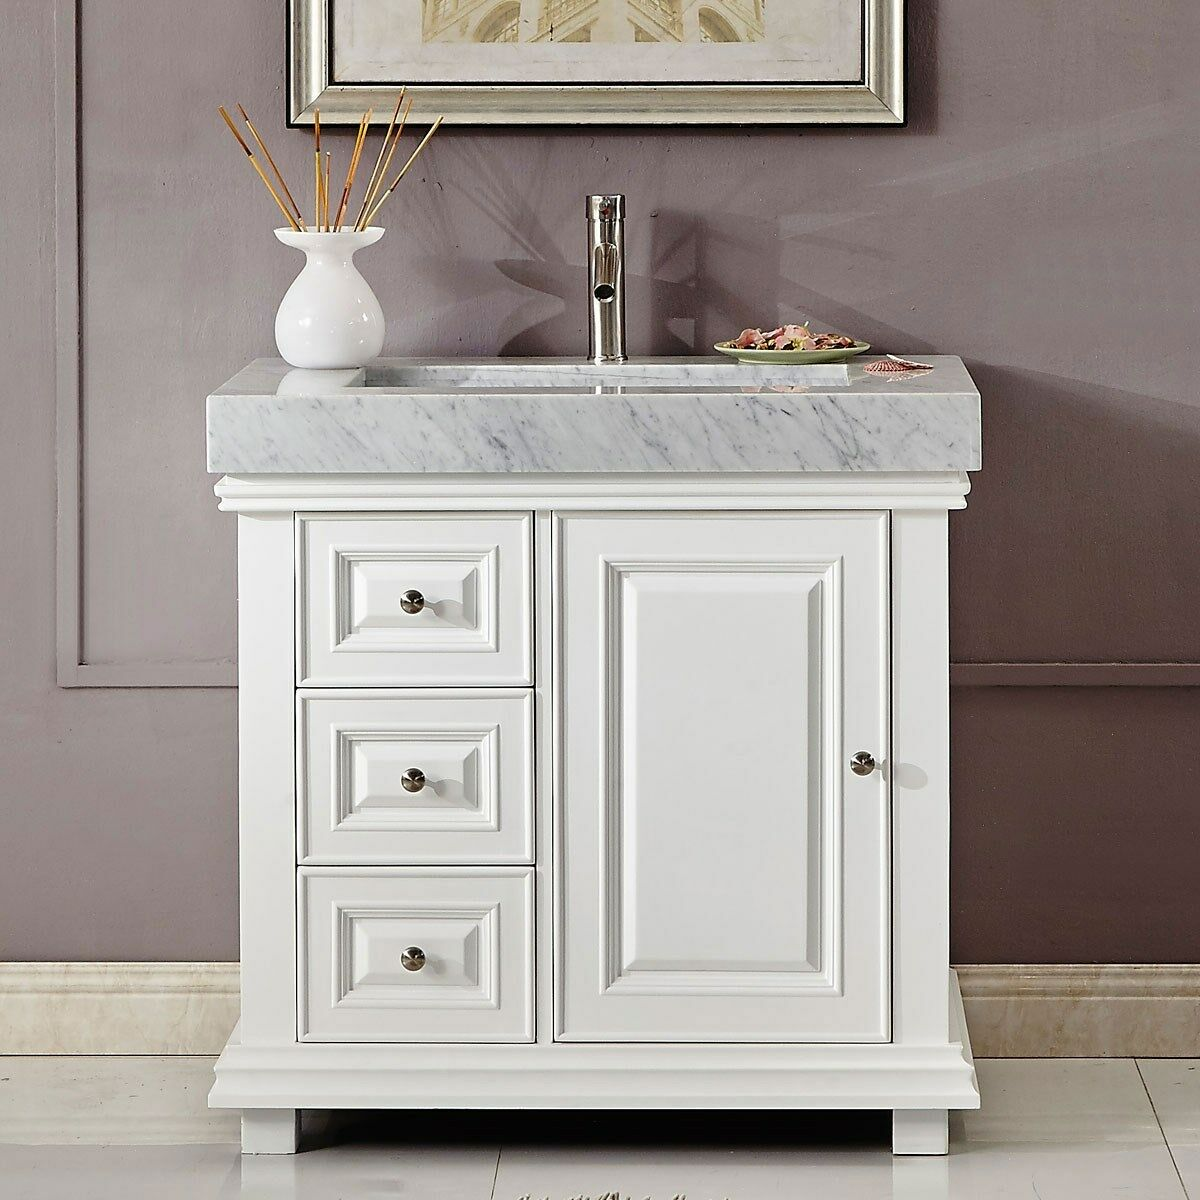 Details About 36 Inch Modern Off White Marble Top Bathroom Vanity Single Sink Cabinet 0286wr